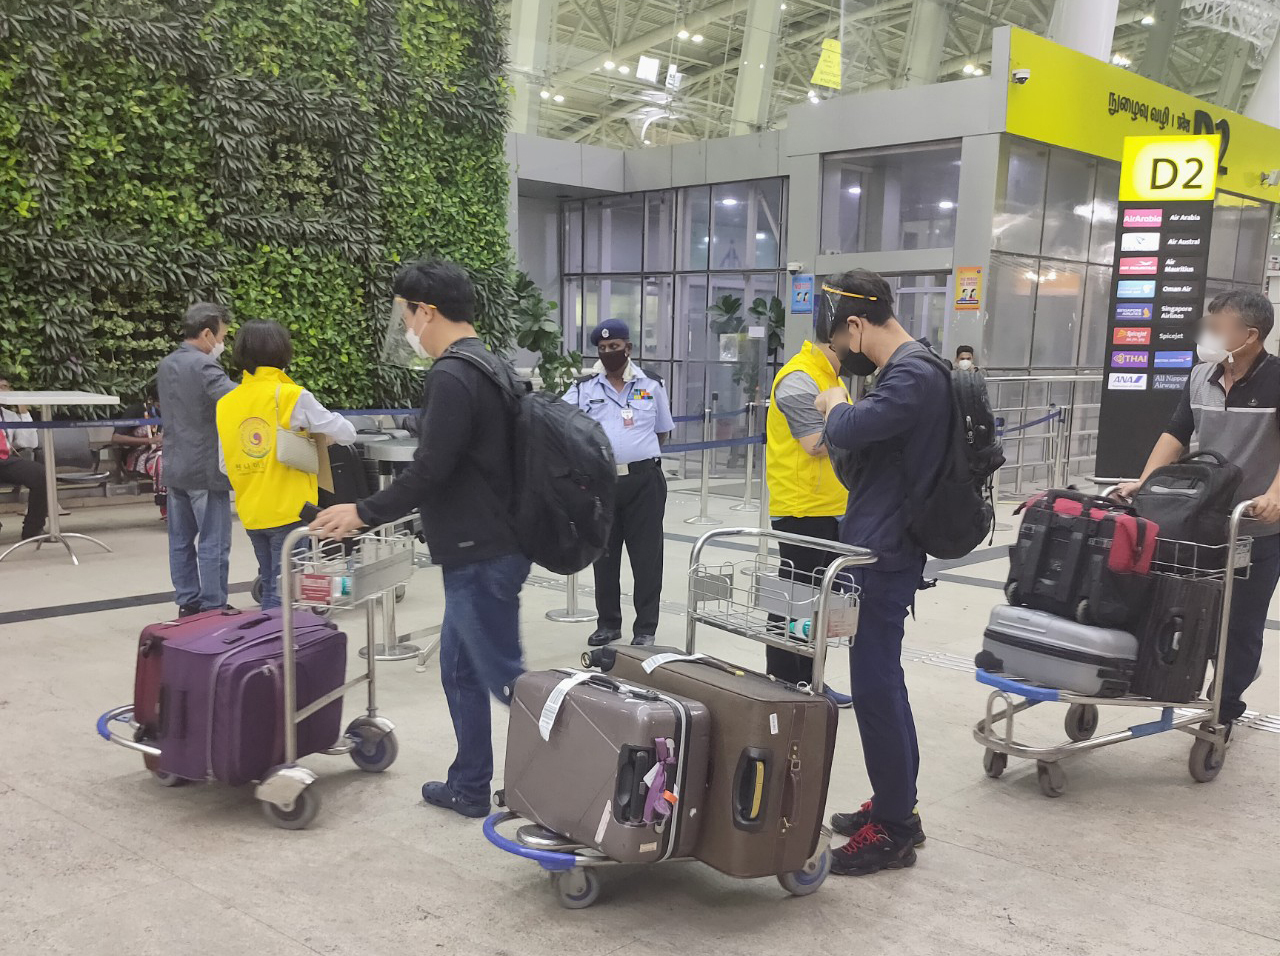 This photo provided by the Consulate General of South Korea in Chennai on Monday, shows South Korean citizens boarding a special flight to South Korea at Chennai International Airport in southern India. (Consulate General of South Korea in Chennai)